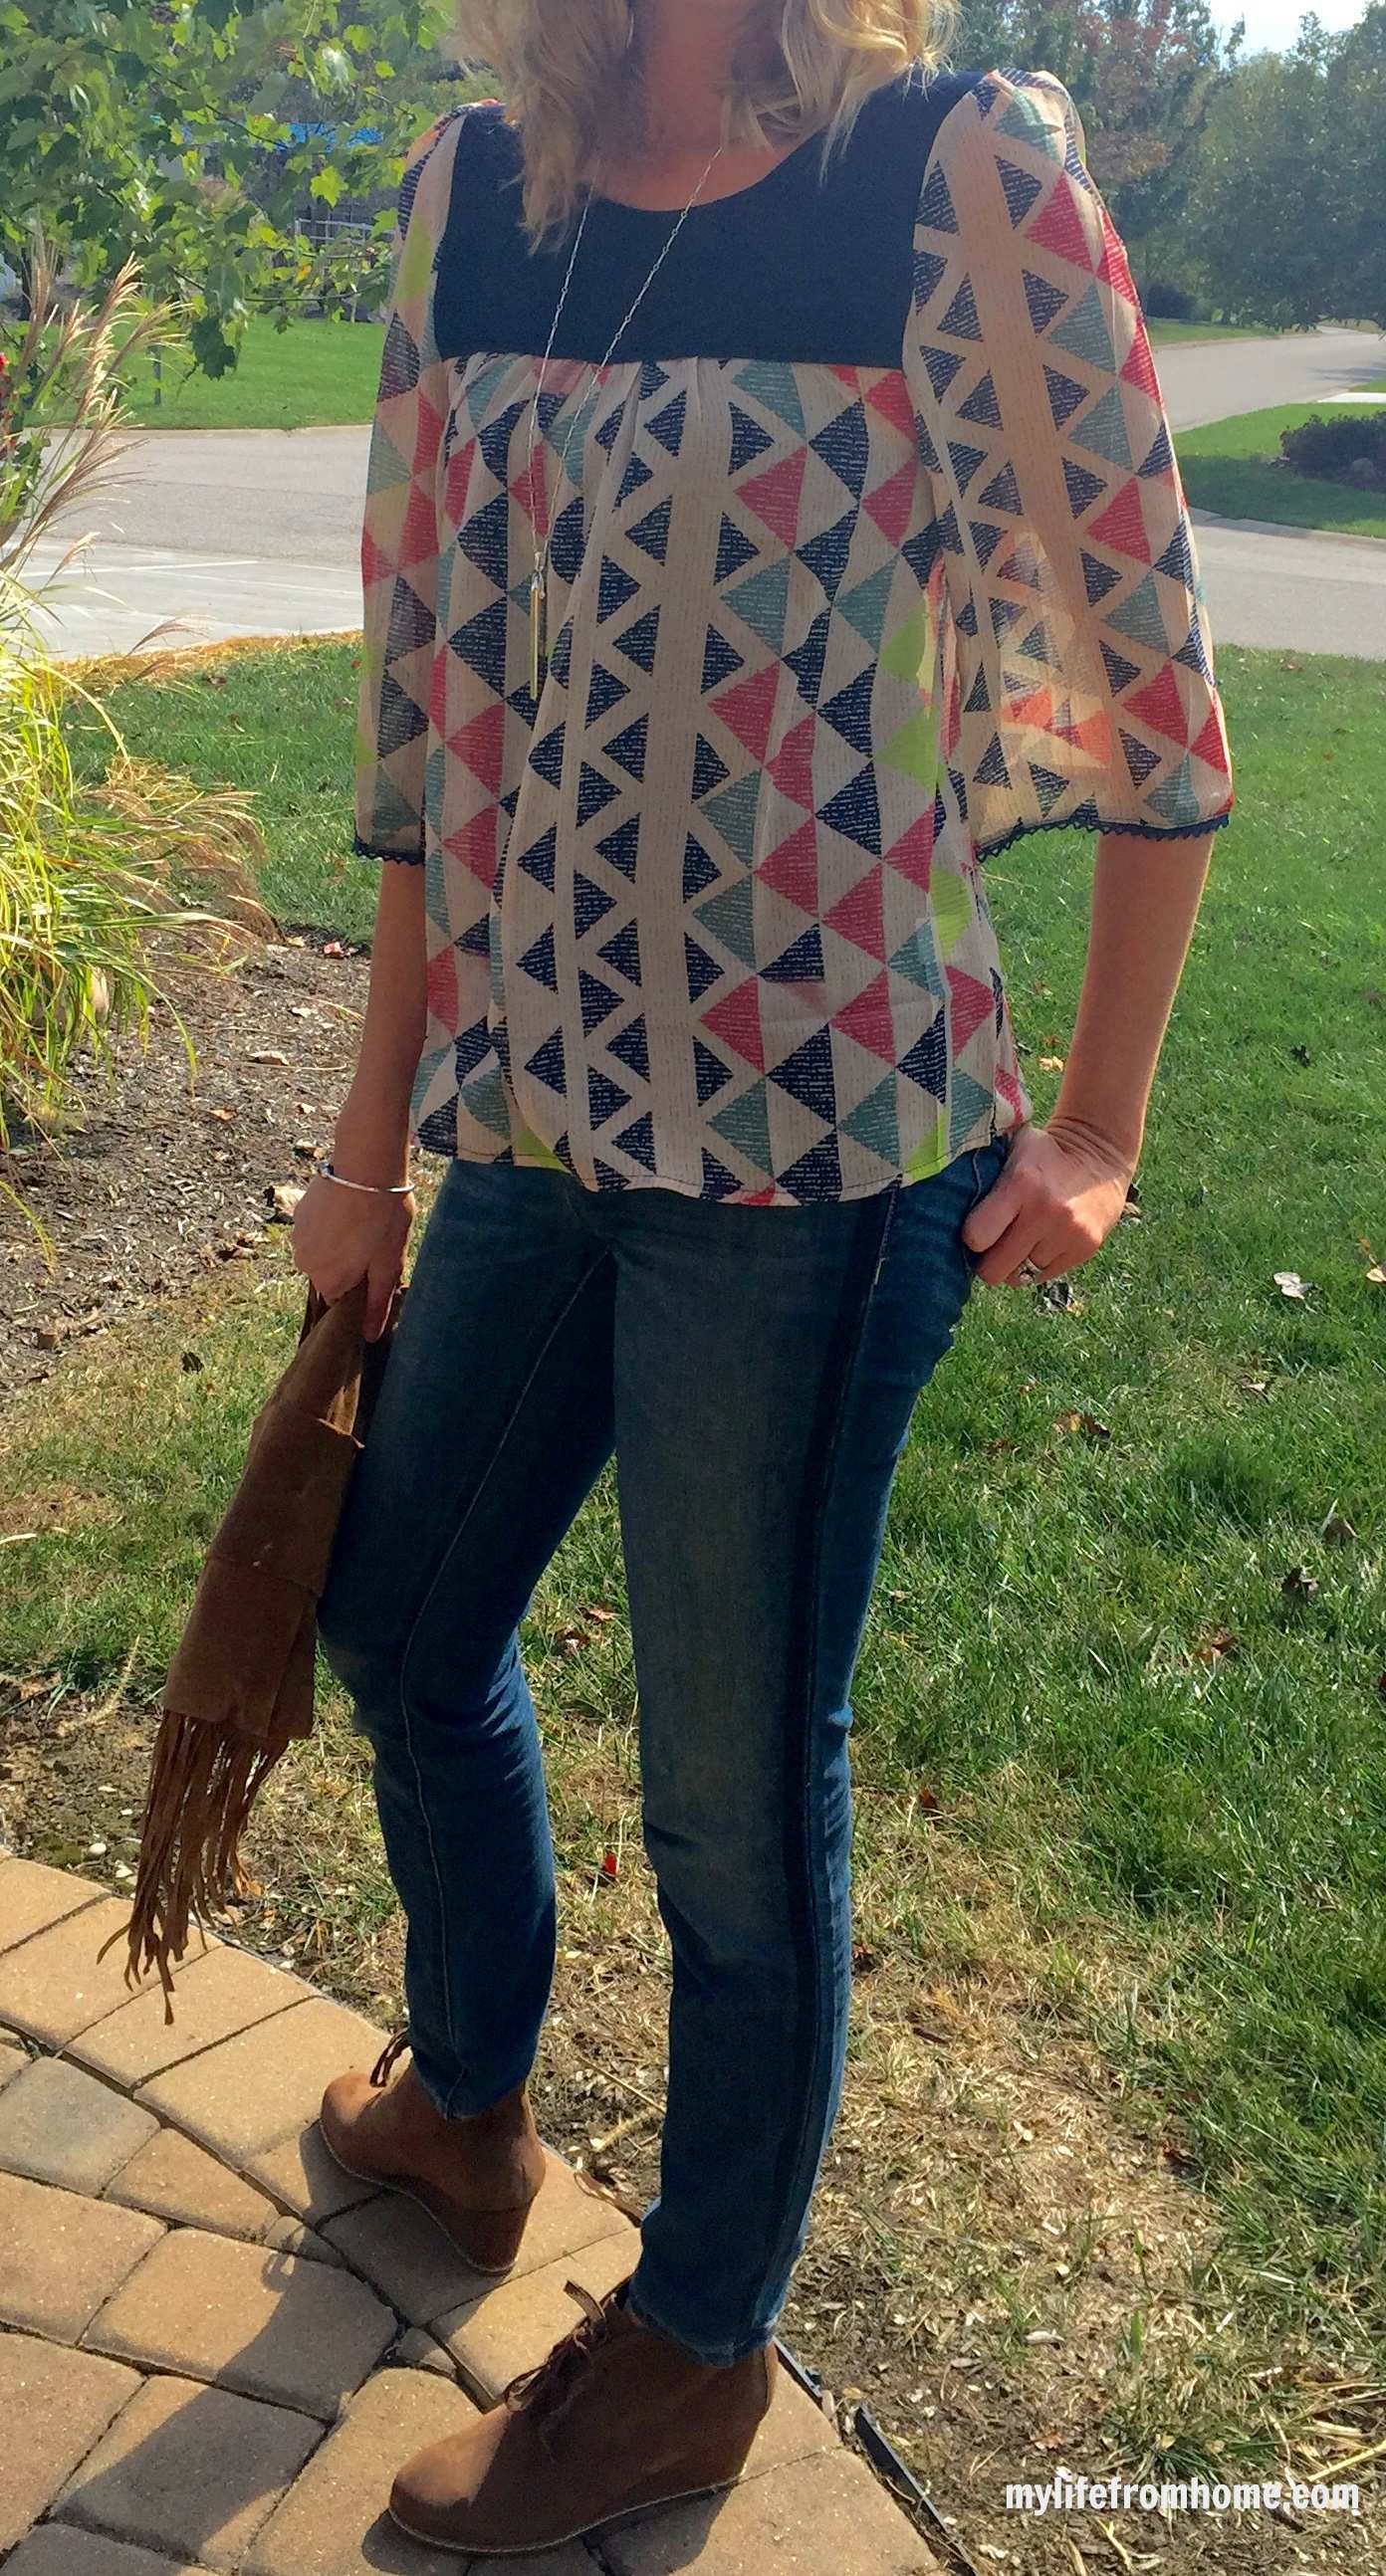 Casual Outfit Featuring Geometric Print and fringe by www.mylifefromhome.com